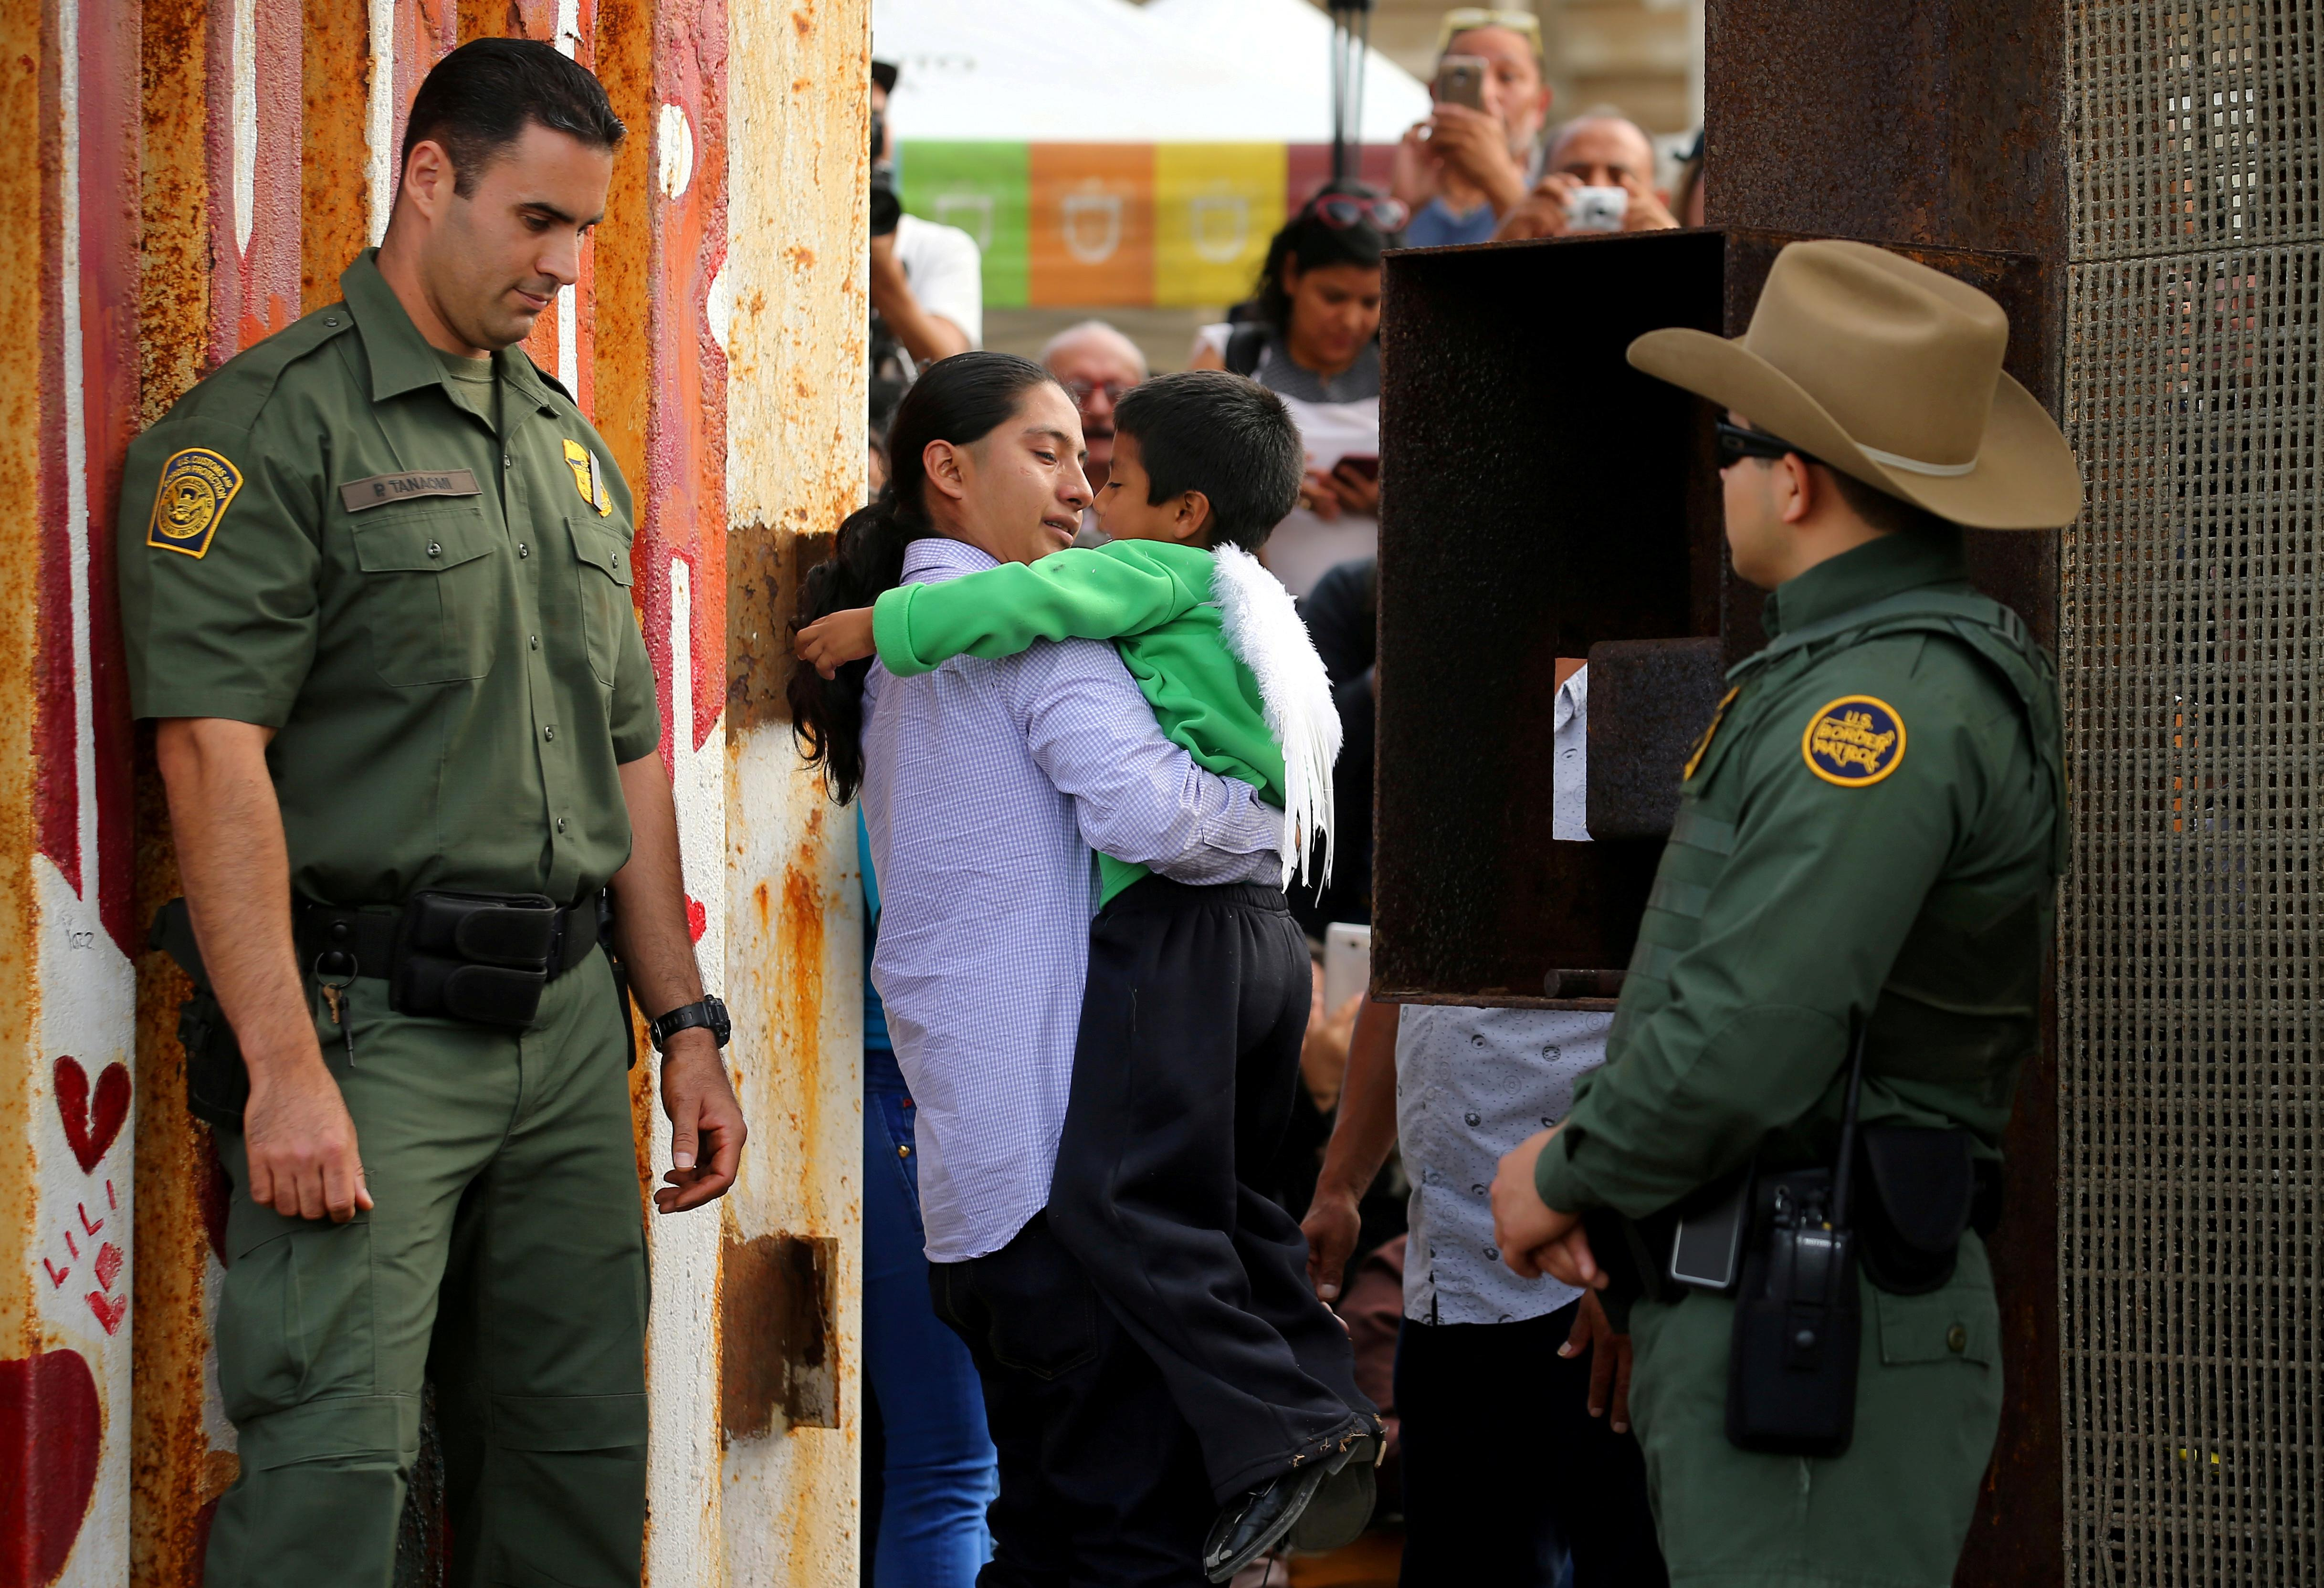 Families Fearing Deportation Because of Trump's Immigration Policies Prepare for I.C.E. Raid